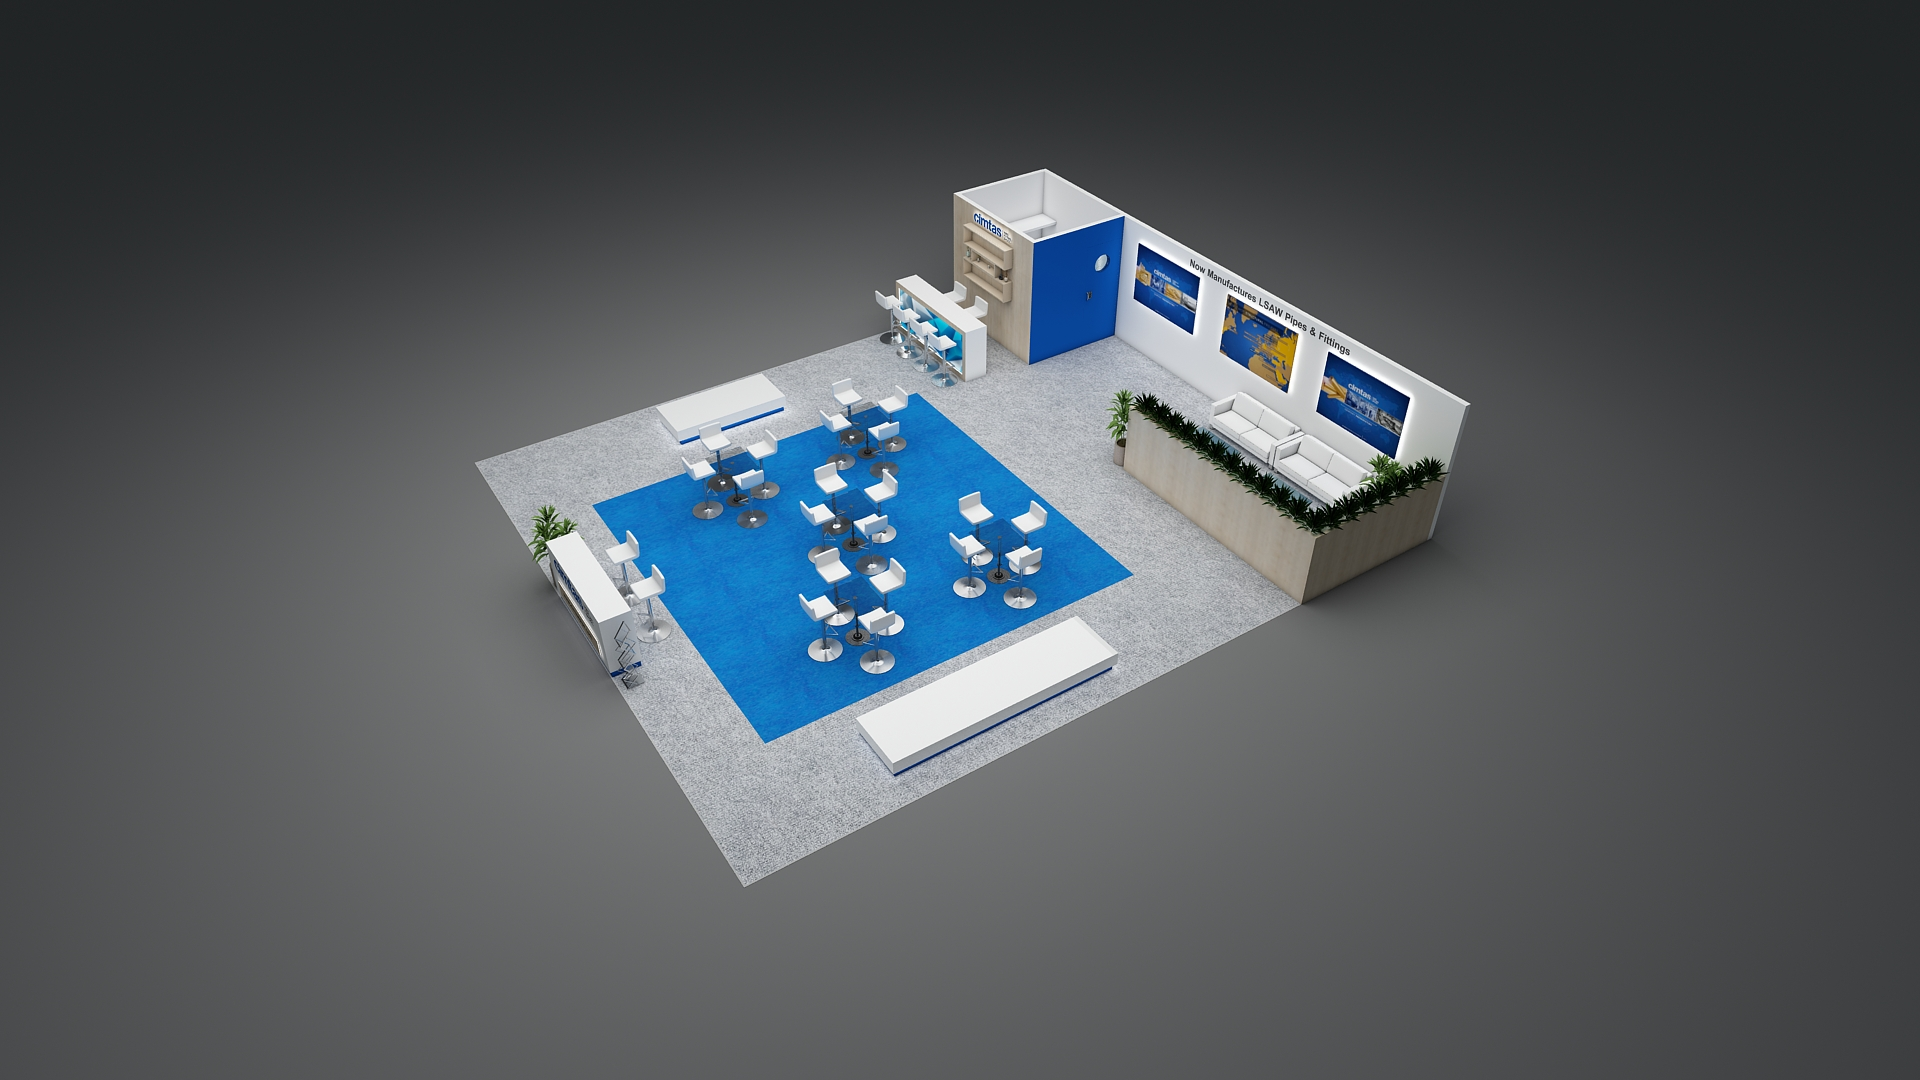 , 30×30 Trade Show Booth Displays & Exhibits